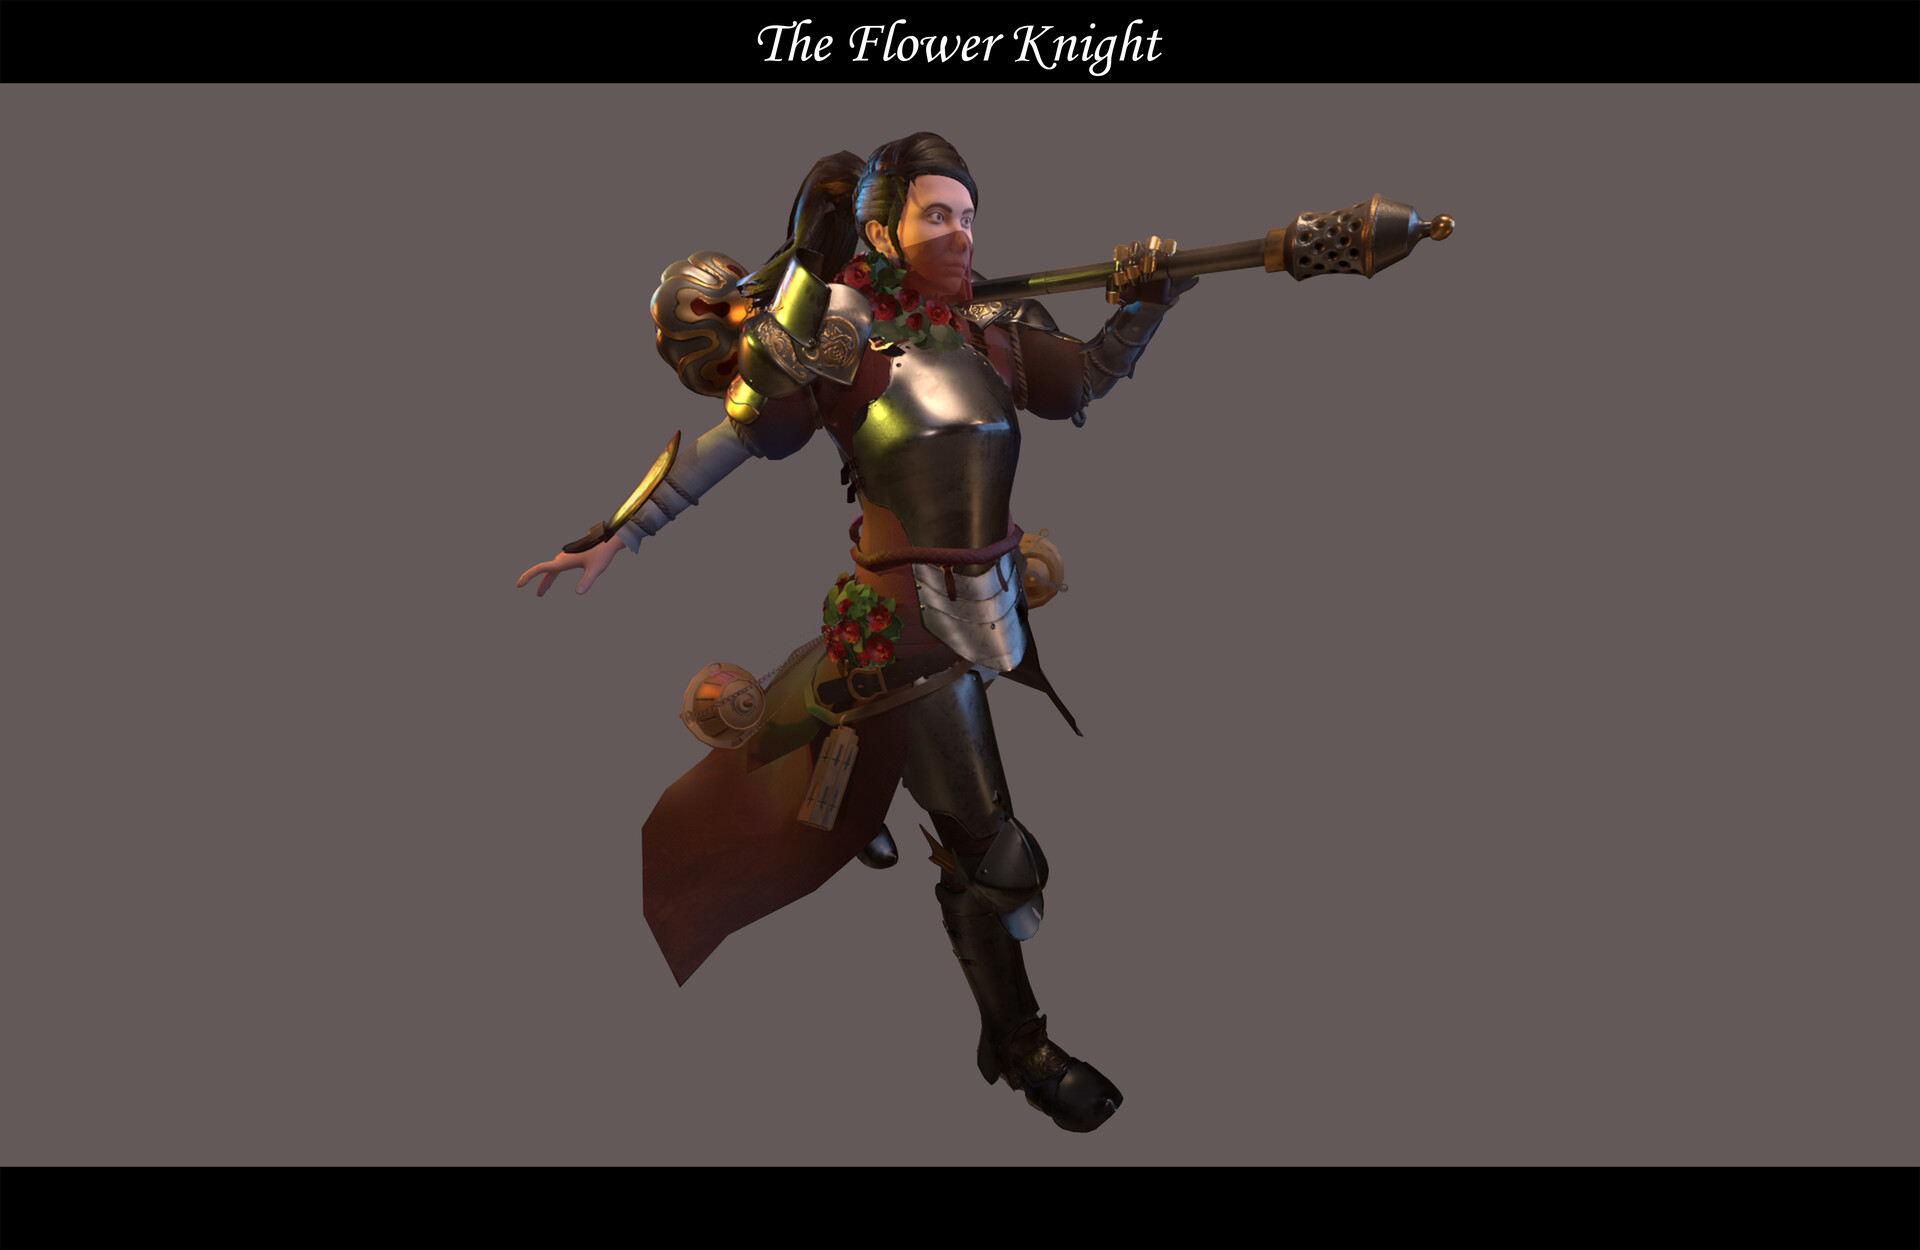 Jacob brockway the flower knight